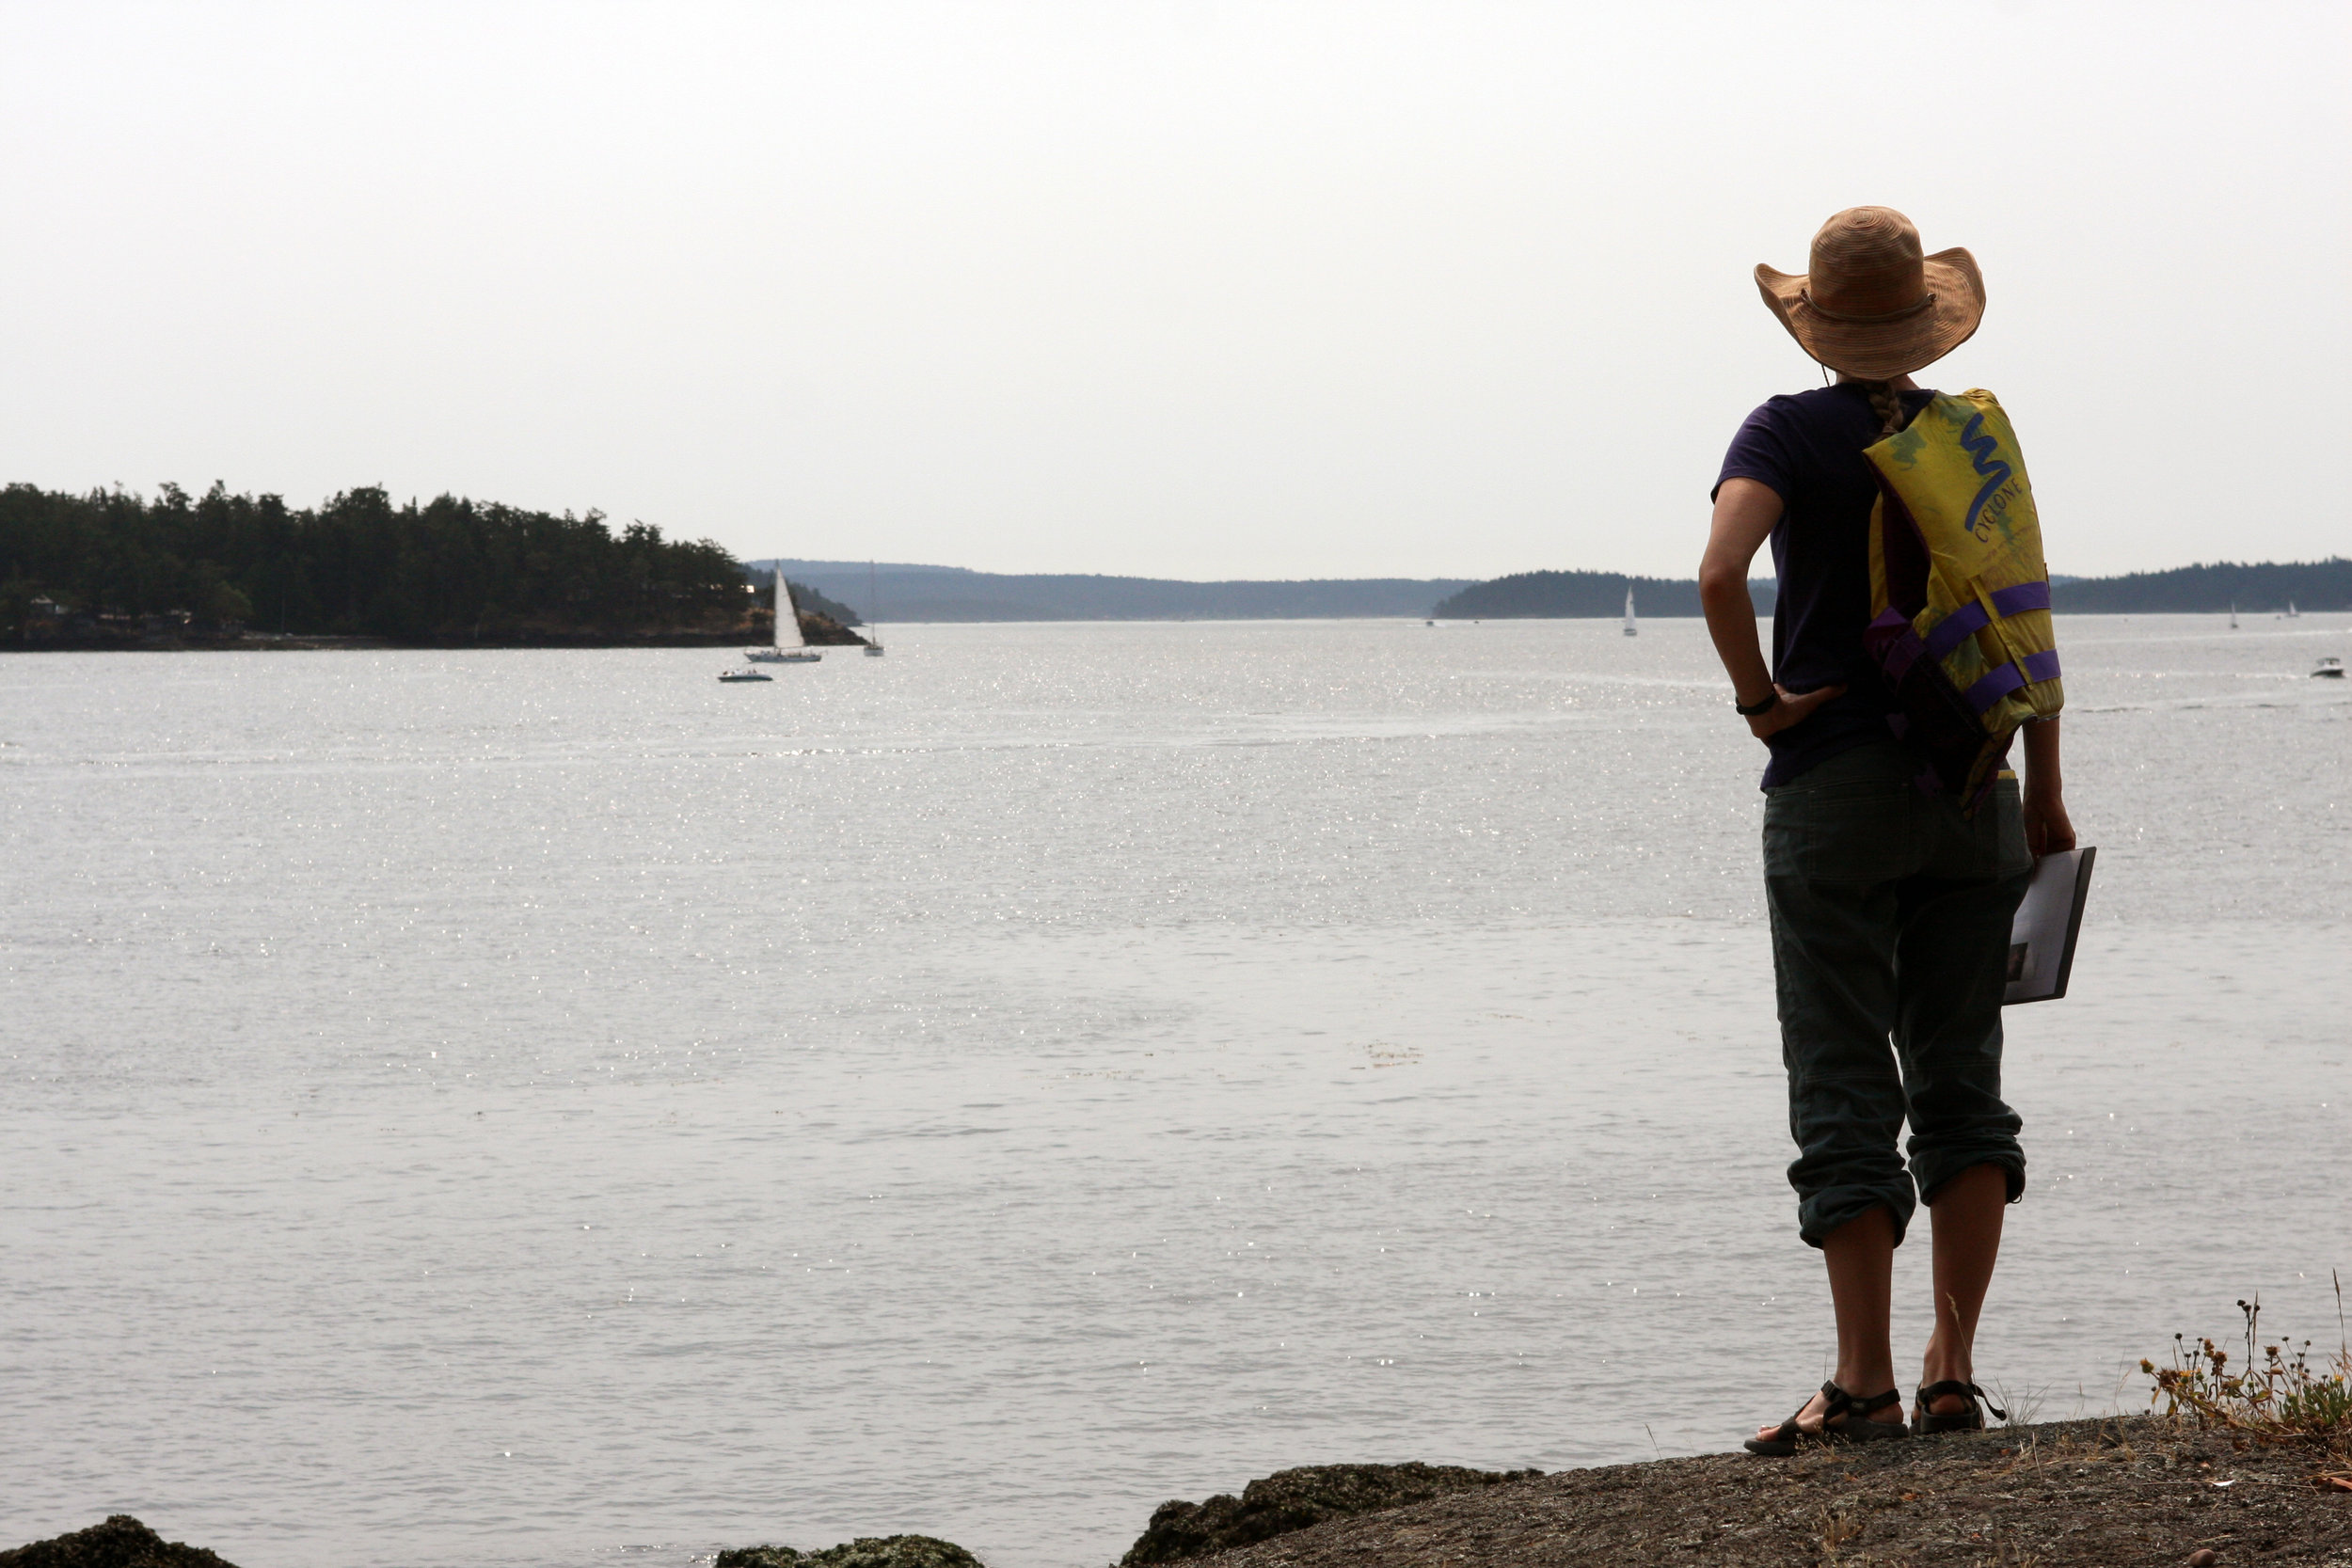 Ecologist Emily Howe looks out over Puget Sound during a survey of sea star health on Yellow Island. Photo by Heather Van Steenburgh.